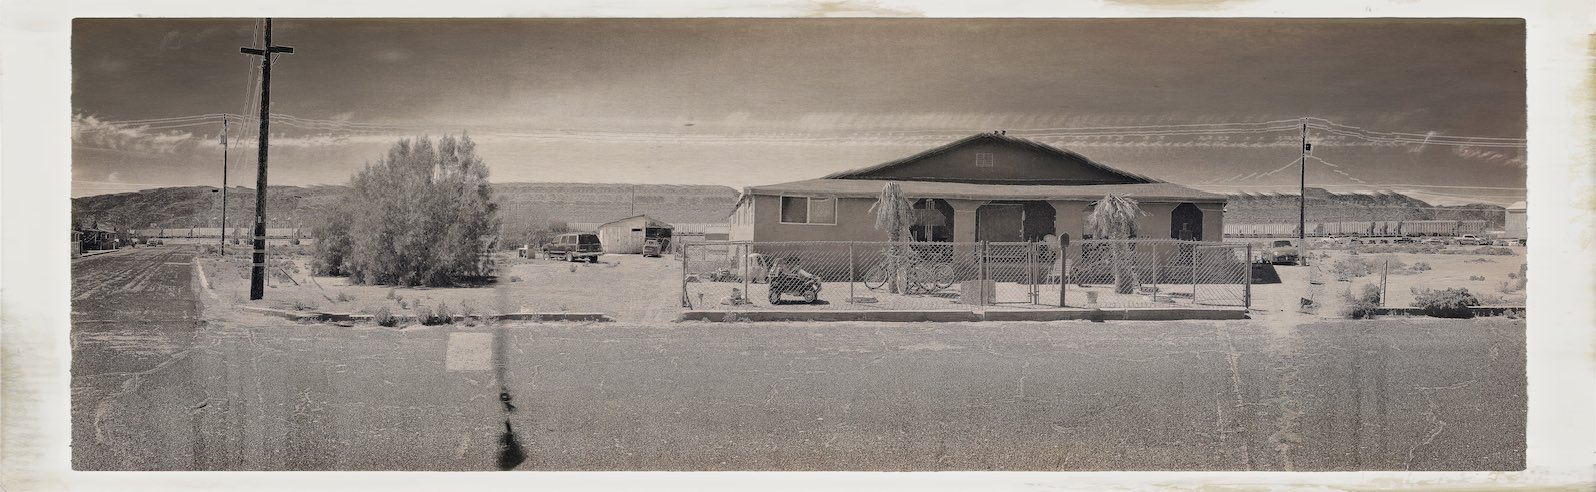 Trona Residential  Digitally Filtered Photograph, 10 March, 2016   Copyright © Tennyson Woodbridge, 1963 to present